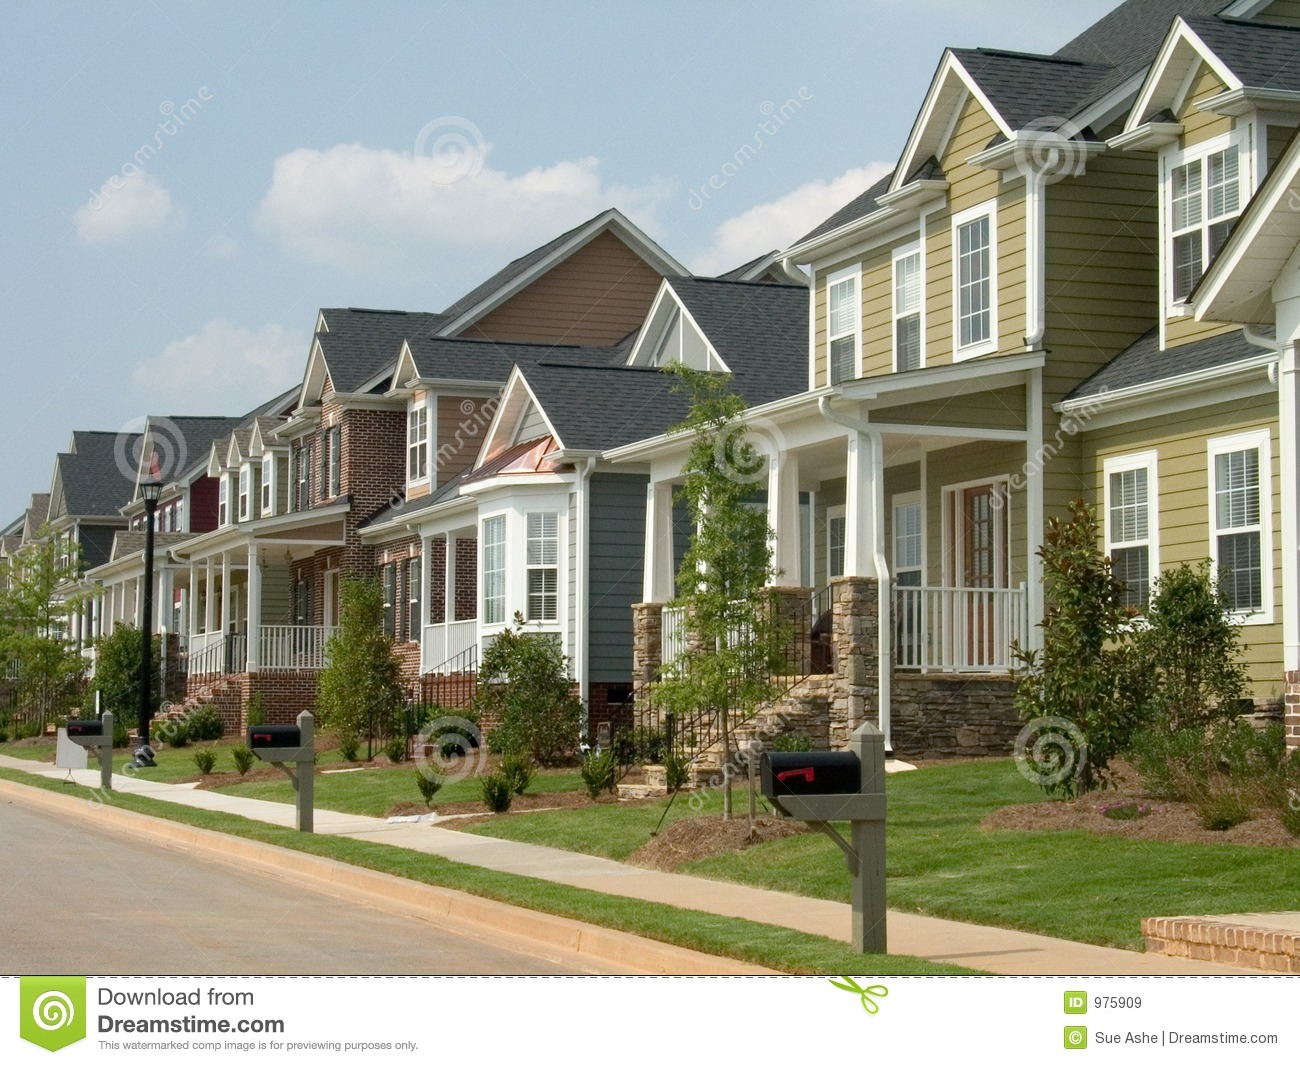 American row house royalty free stock images image 975909 for The american house